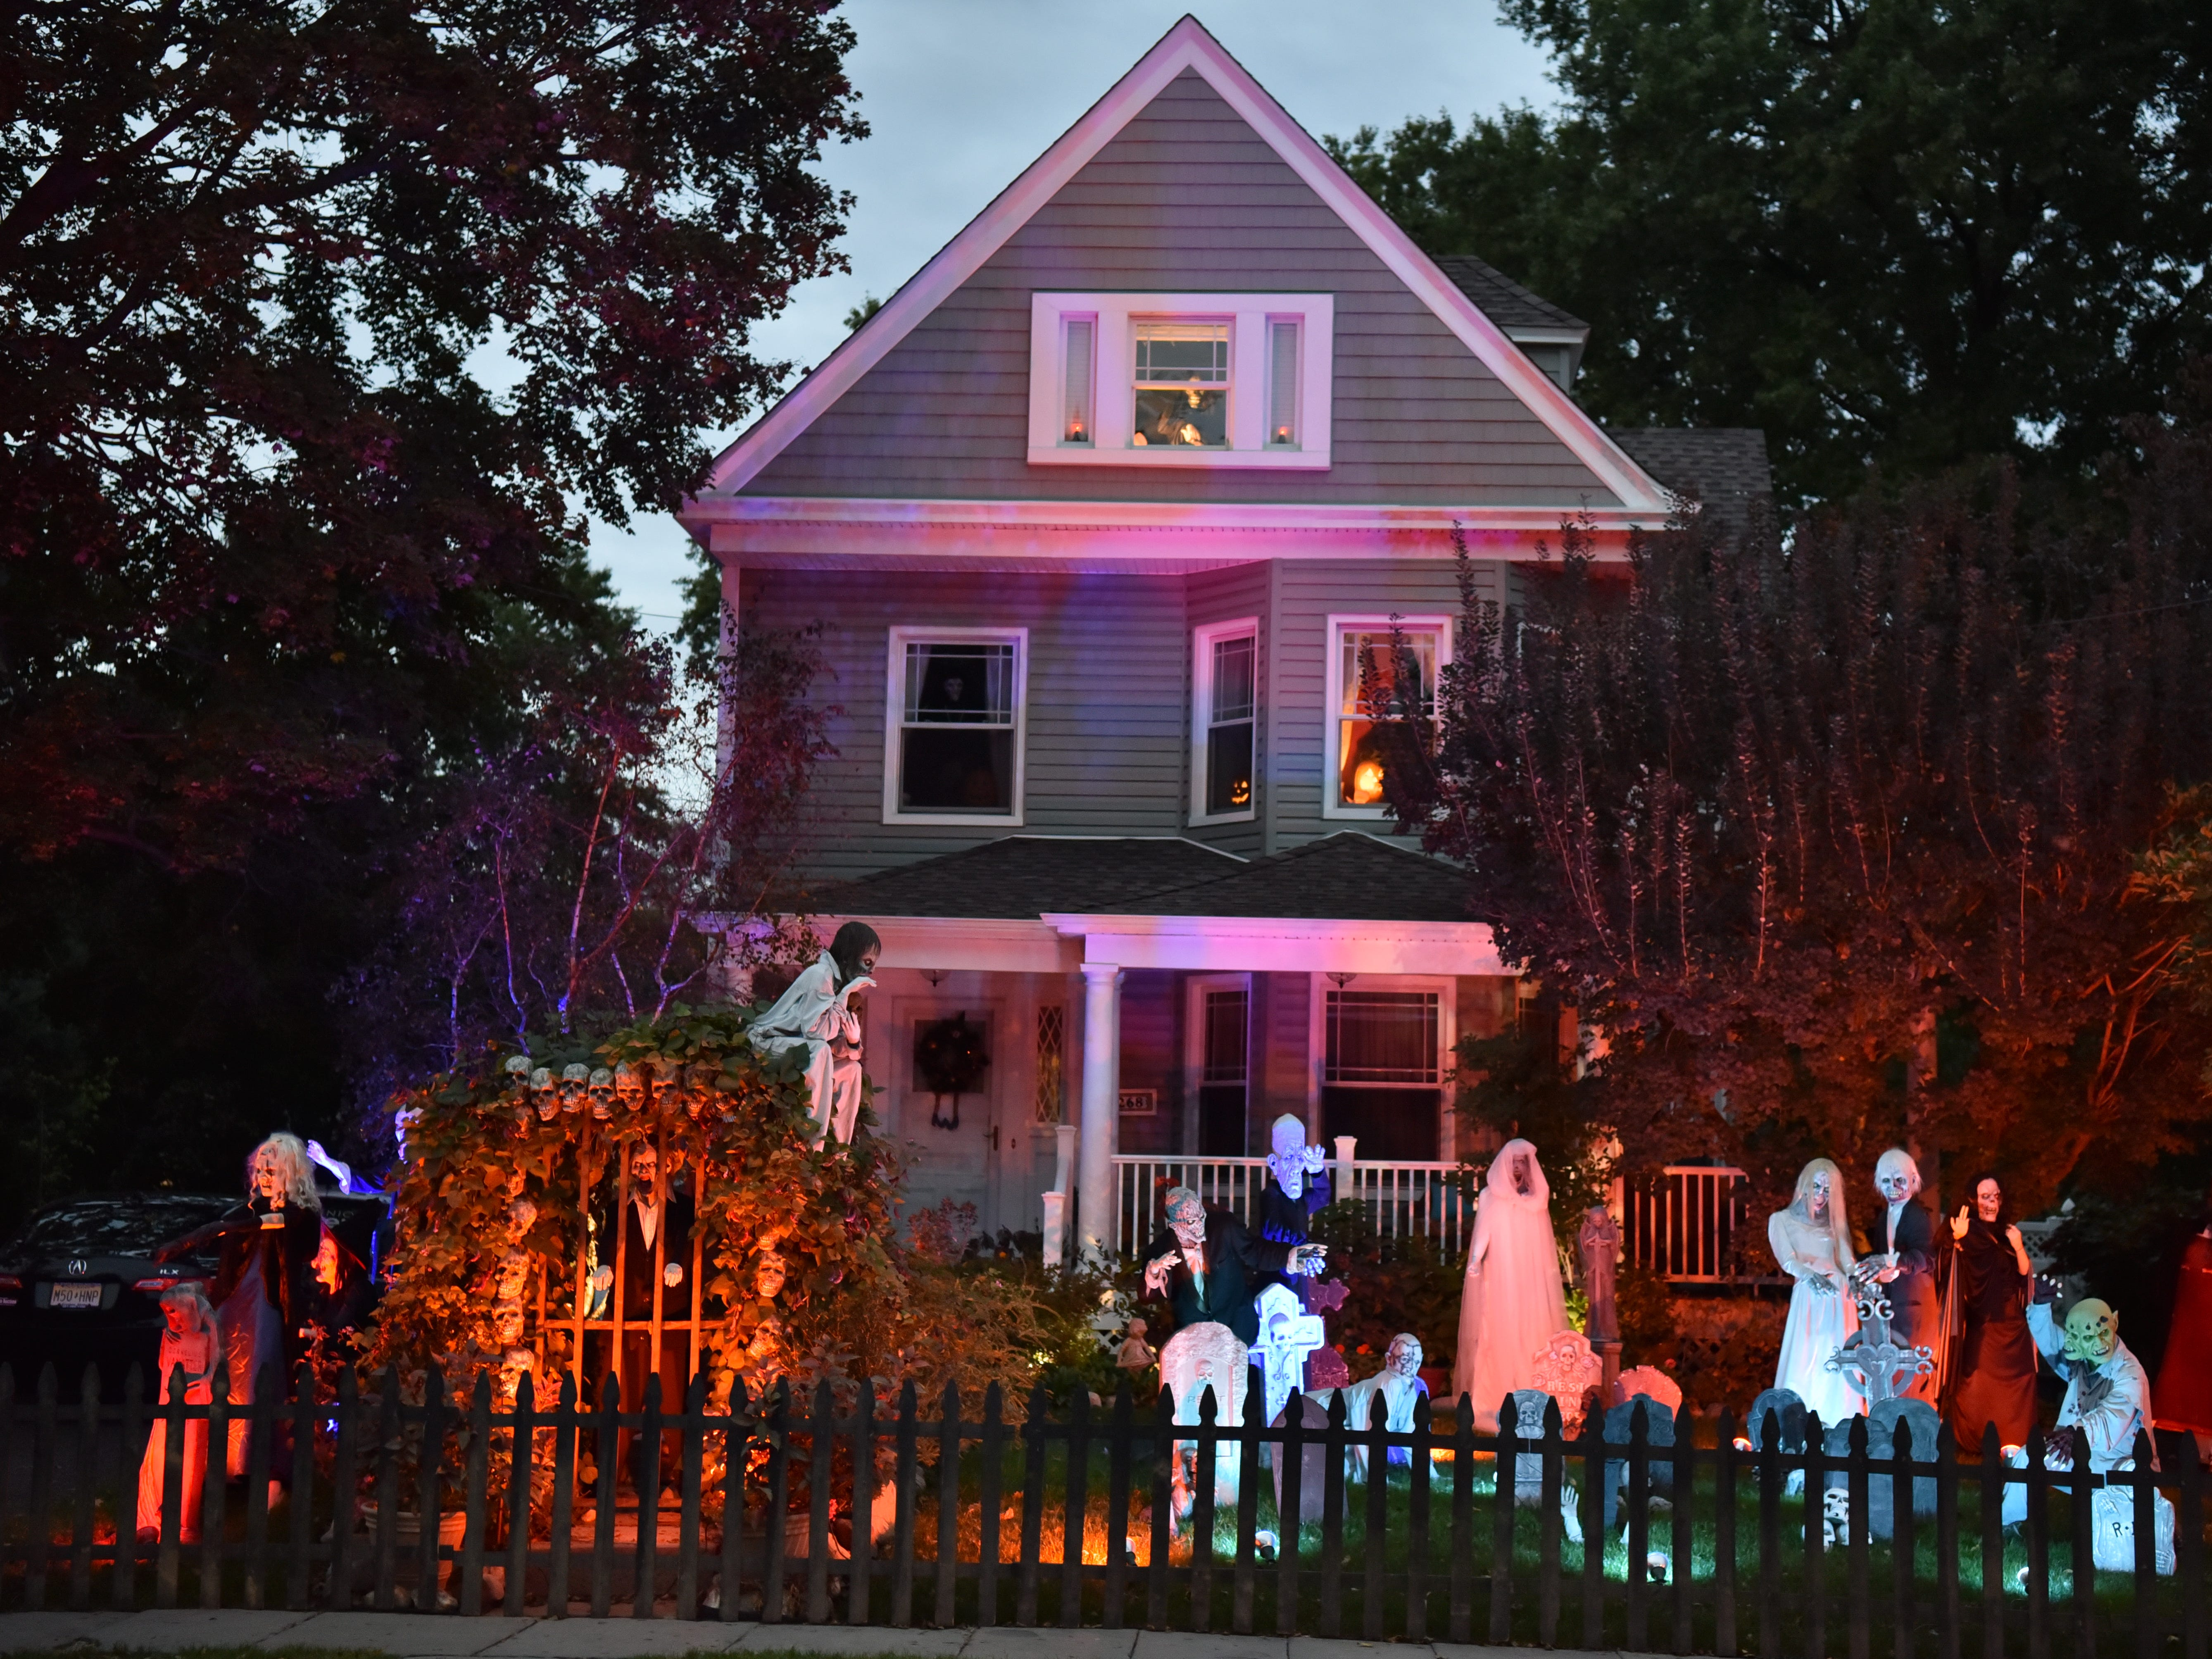 Halloween decorations on Clinton Place in Hackensack, on Tuesday, October 16, 2018.